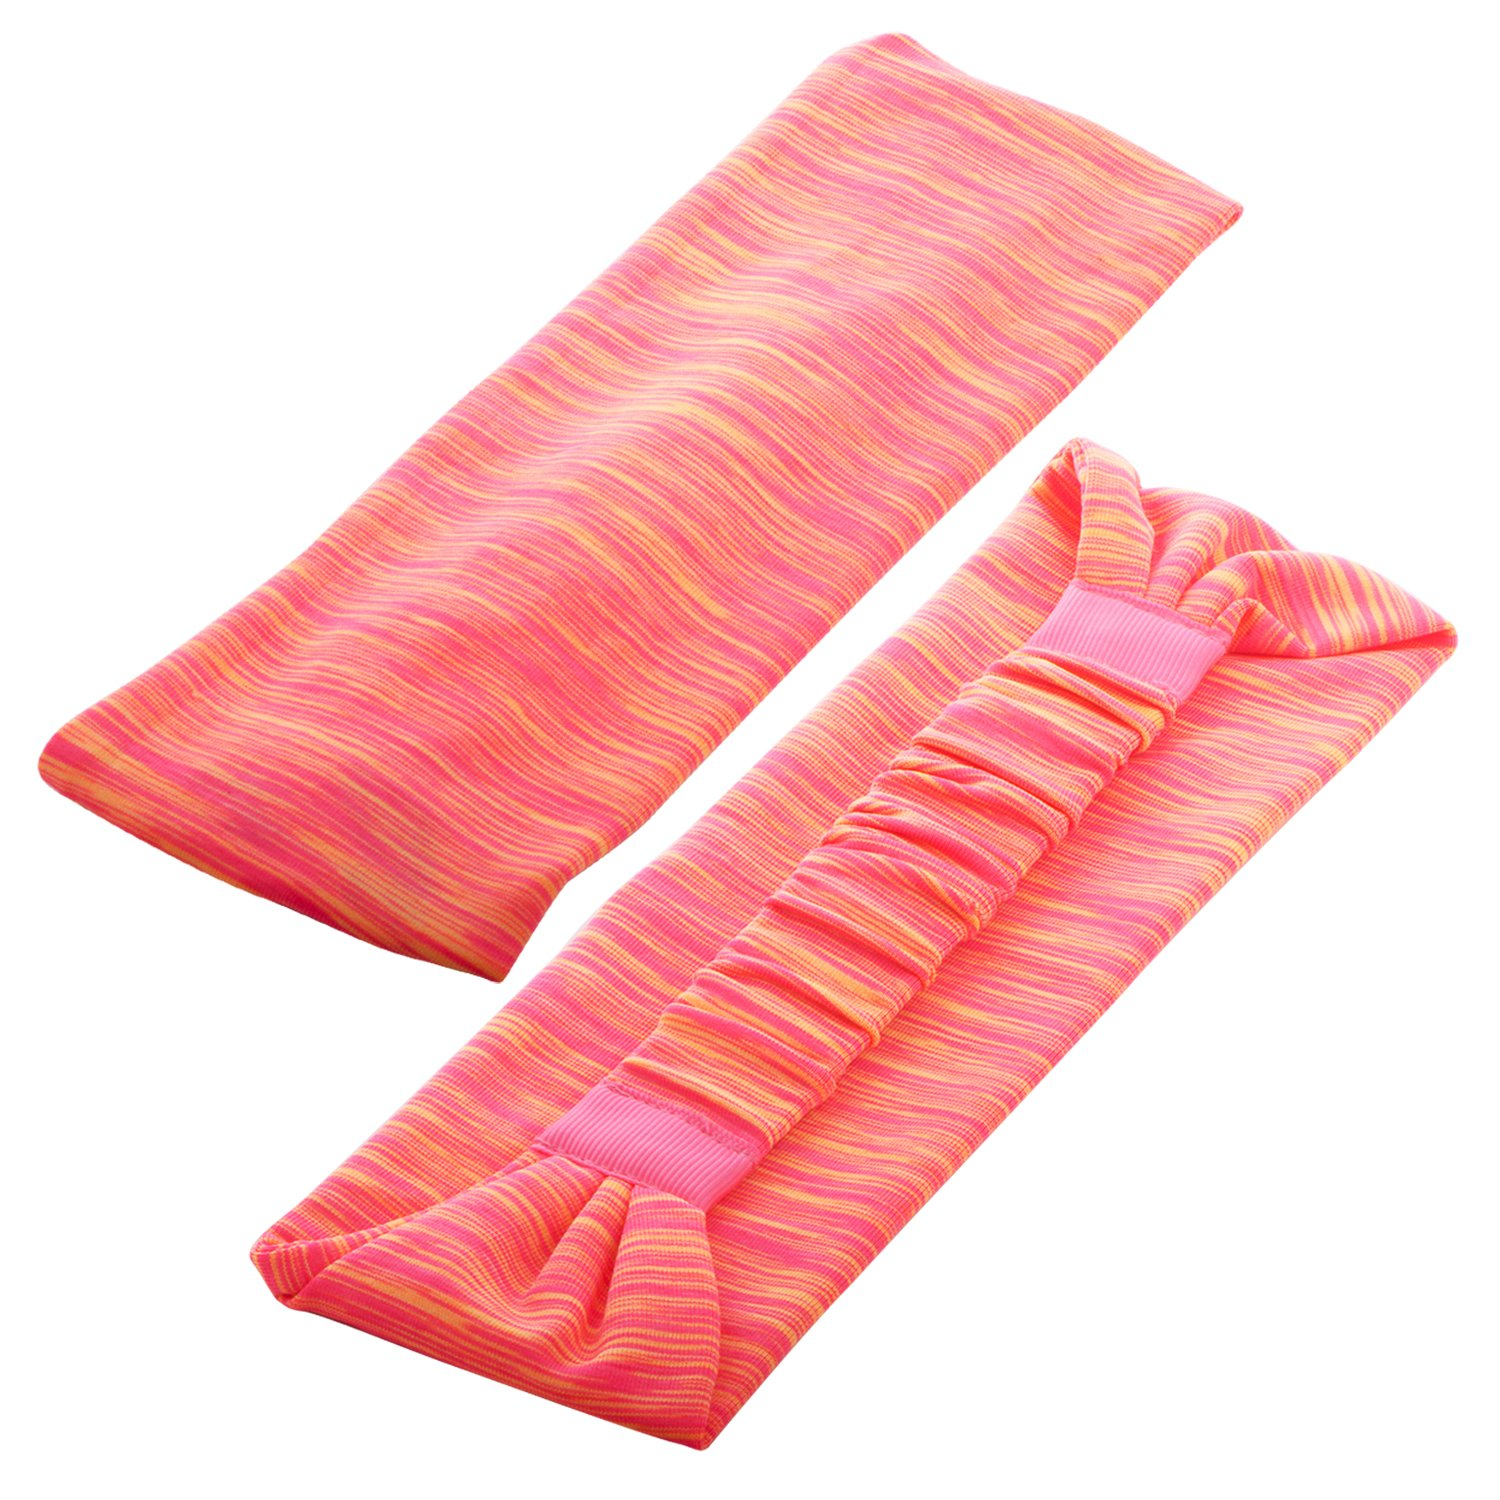 6 Pieces Sport Headband Yoga/Cycling/Running /Fitness ExerciseHairband Elastic Sweatband for Unisex by Leoter (Image #6)